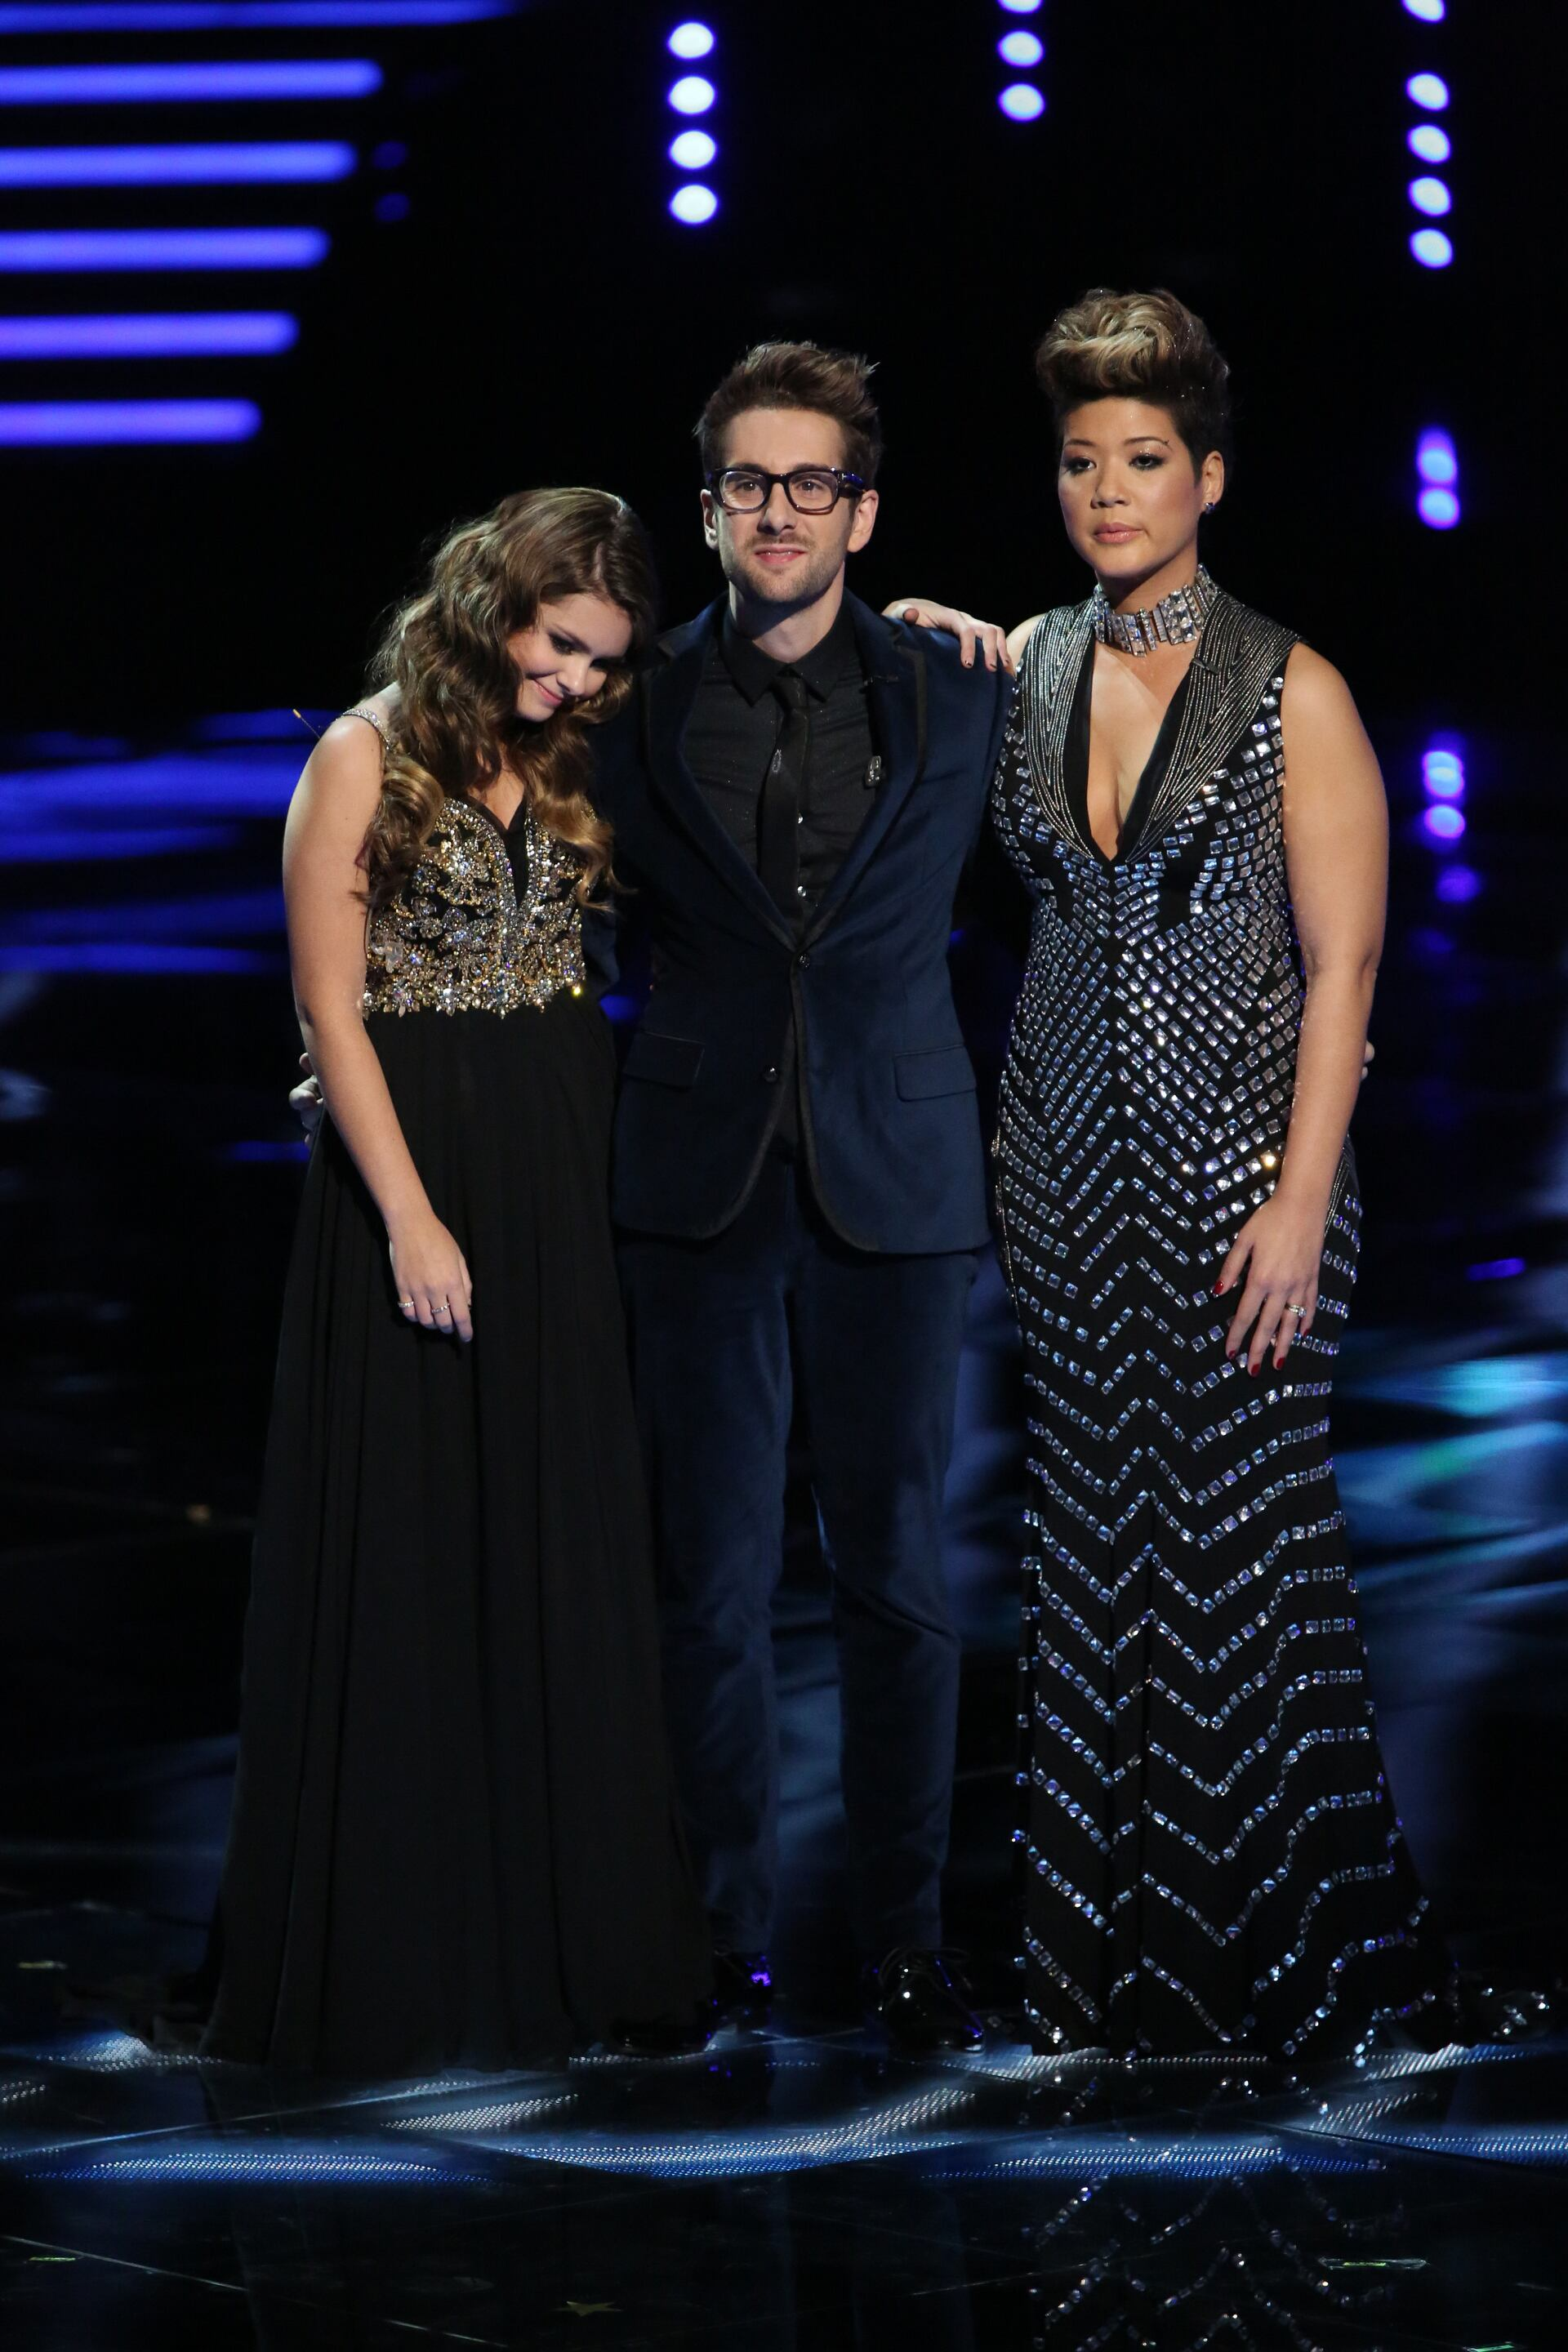 Finally the moment America had been waiting for arrived as Will joined Tessanne and Jacquie to learn the winner of this year's competition.